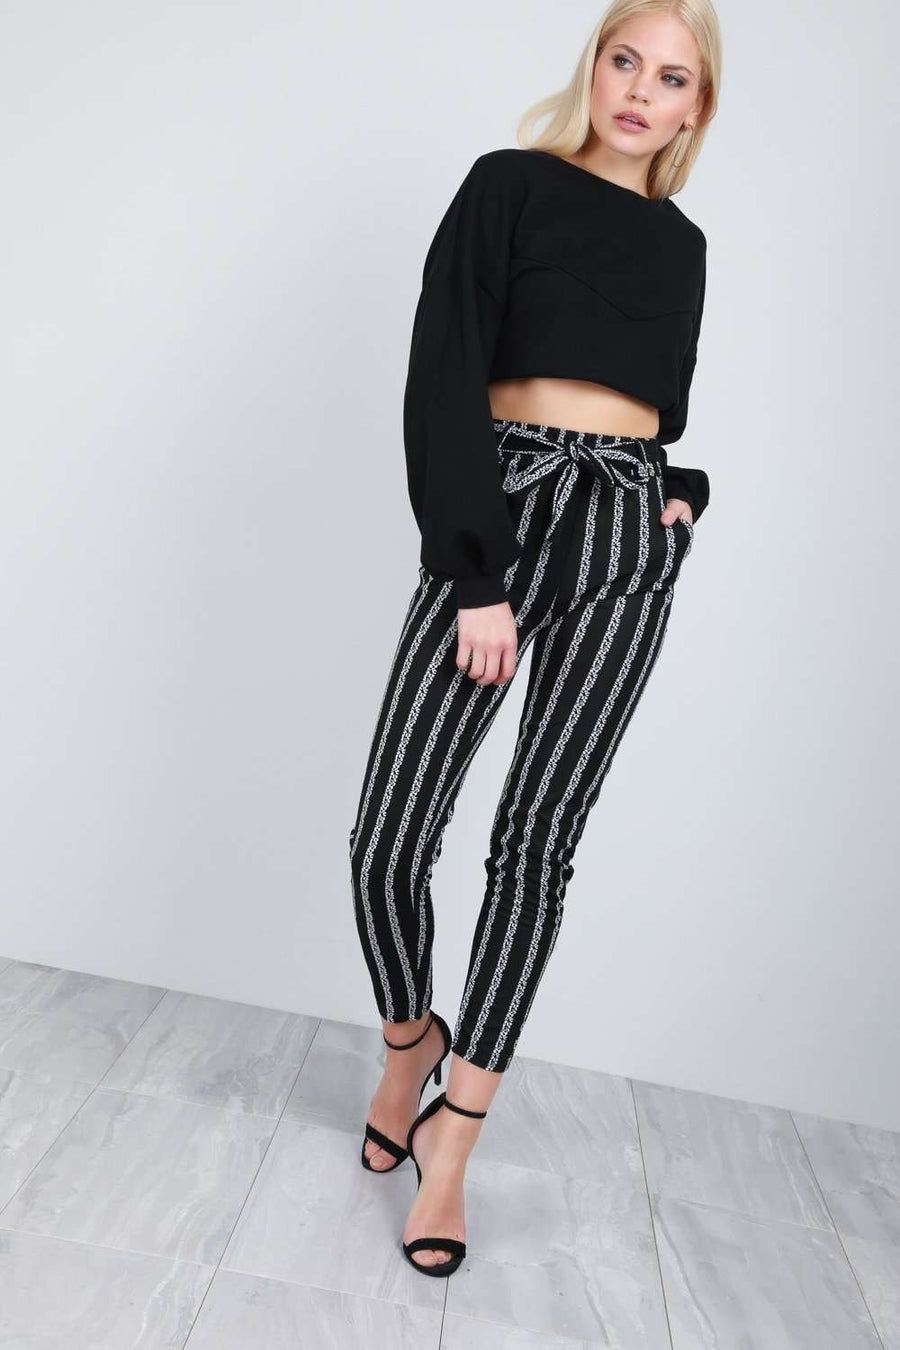 Gina Monochrome Striped High Waist Belted Trousers - bejealous-com